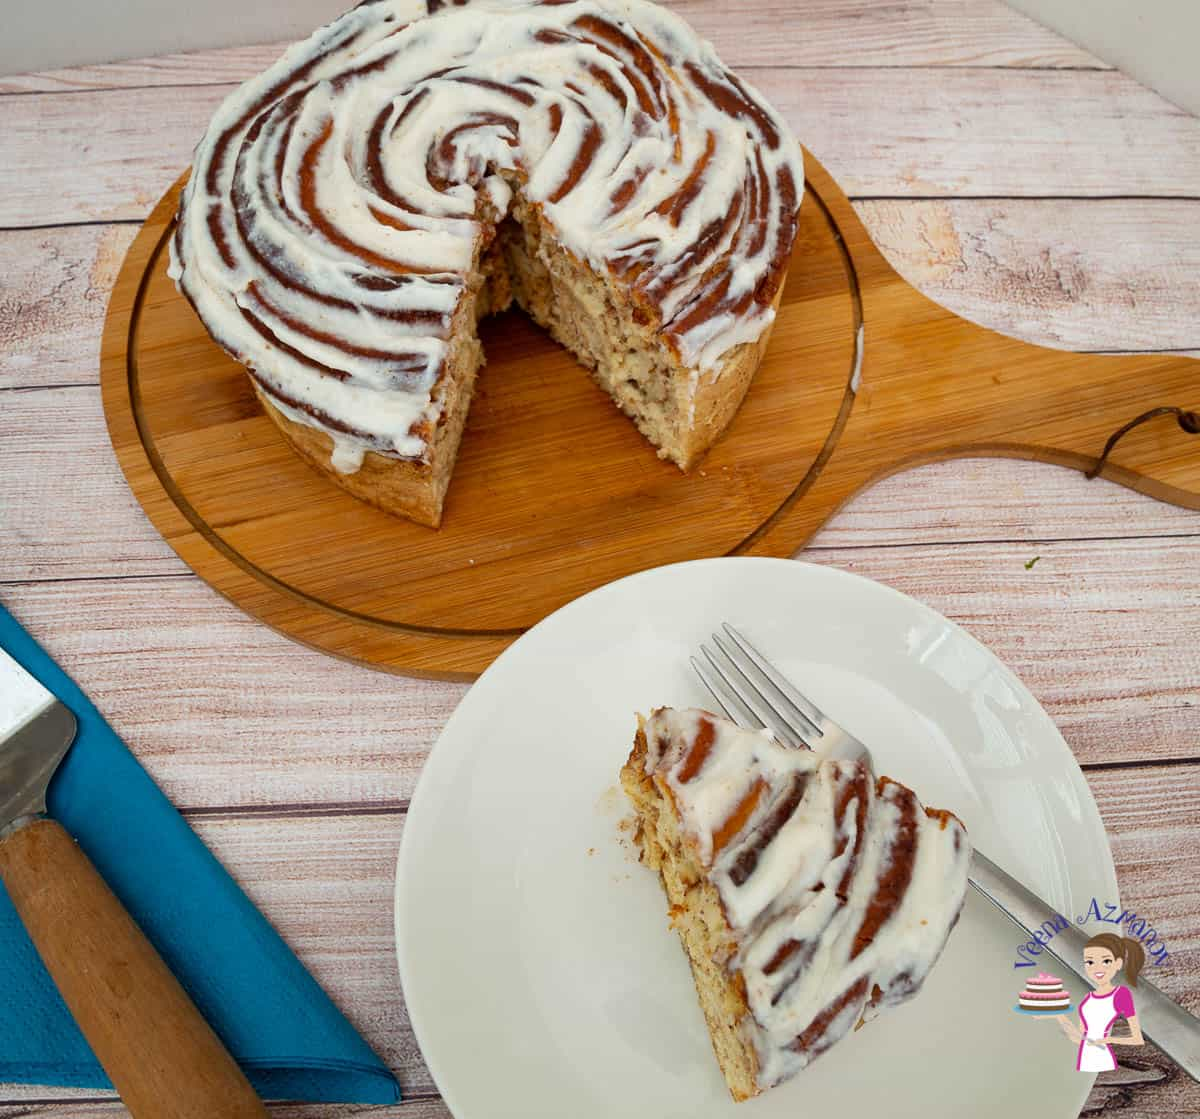 How to make a giant no knead cinnamon roll cake with cream cheese frosting